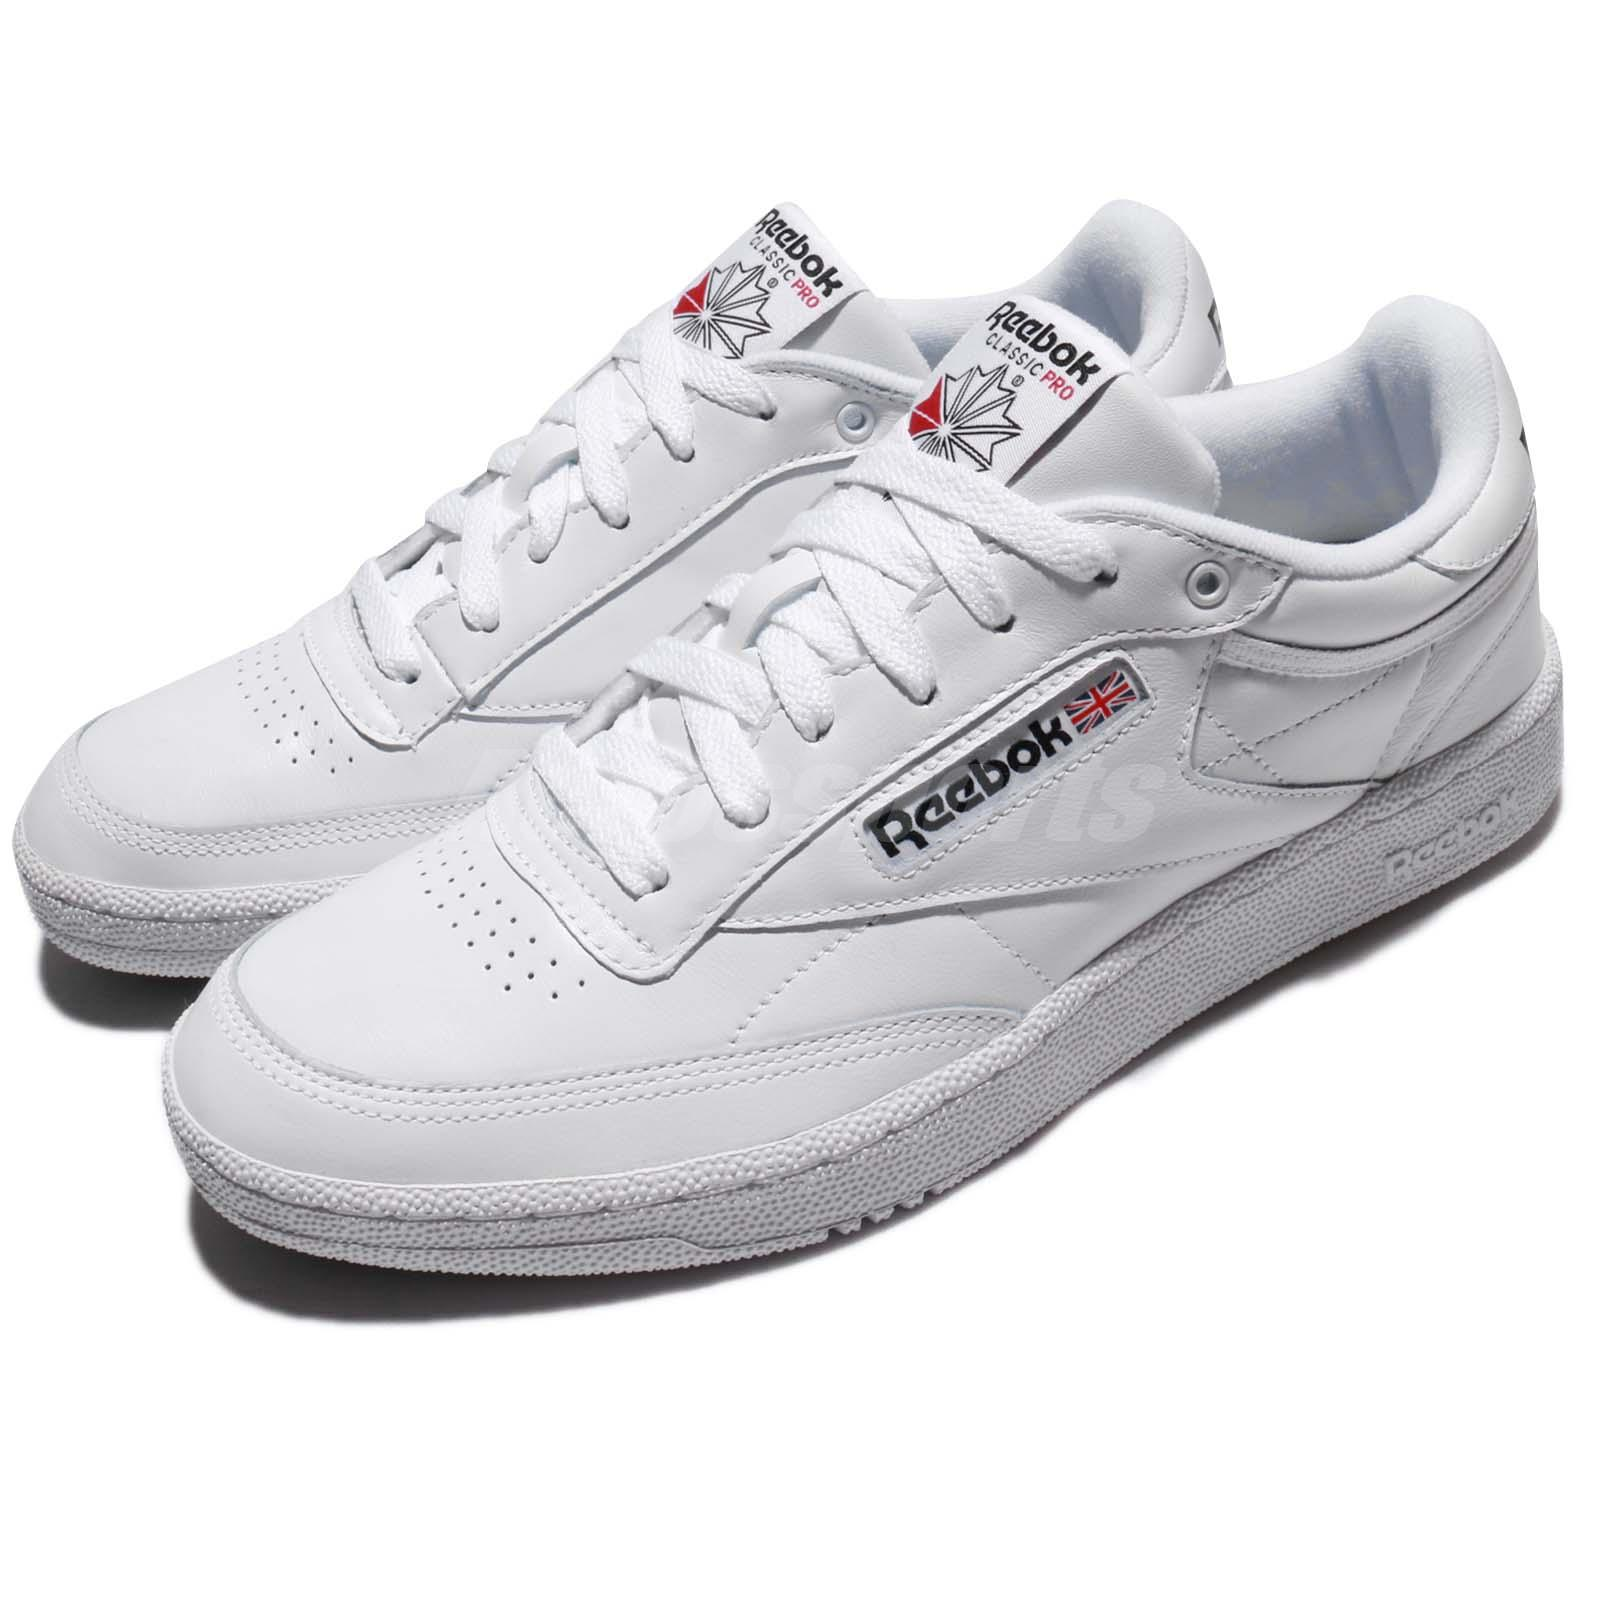 44ece850654f Details about Reebok Club C 85 Pro Leather White Classic Men Shoes Sneakers  Trainers CM9430